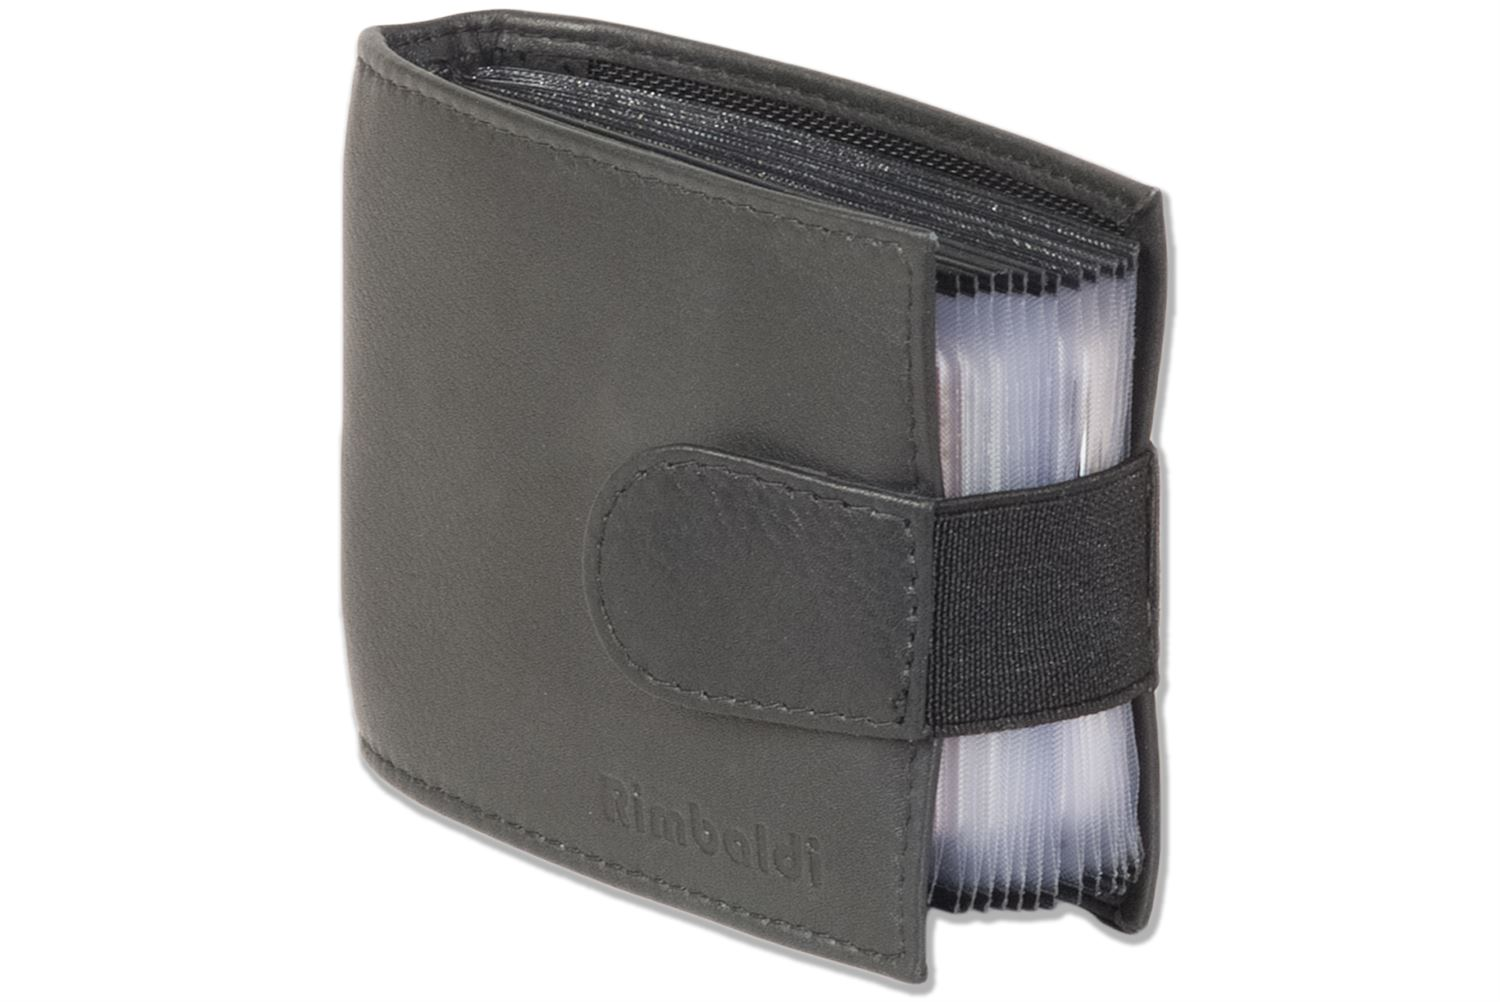 Rimbaldi credit card holder for 20 cards or 40 business cards rimbaldi credit card holder for 20 cards or 40 business cards made of colourmoves